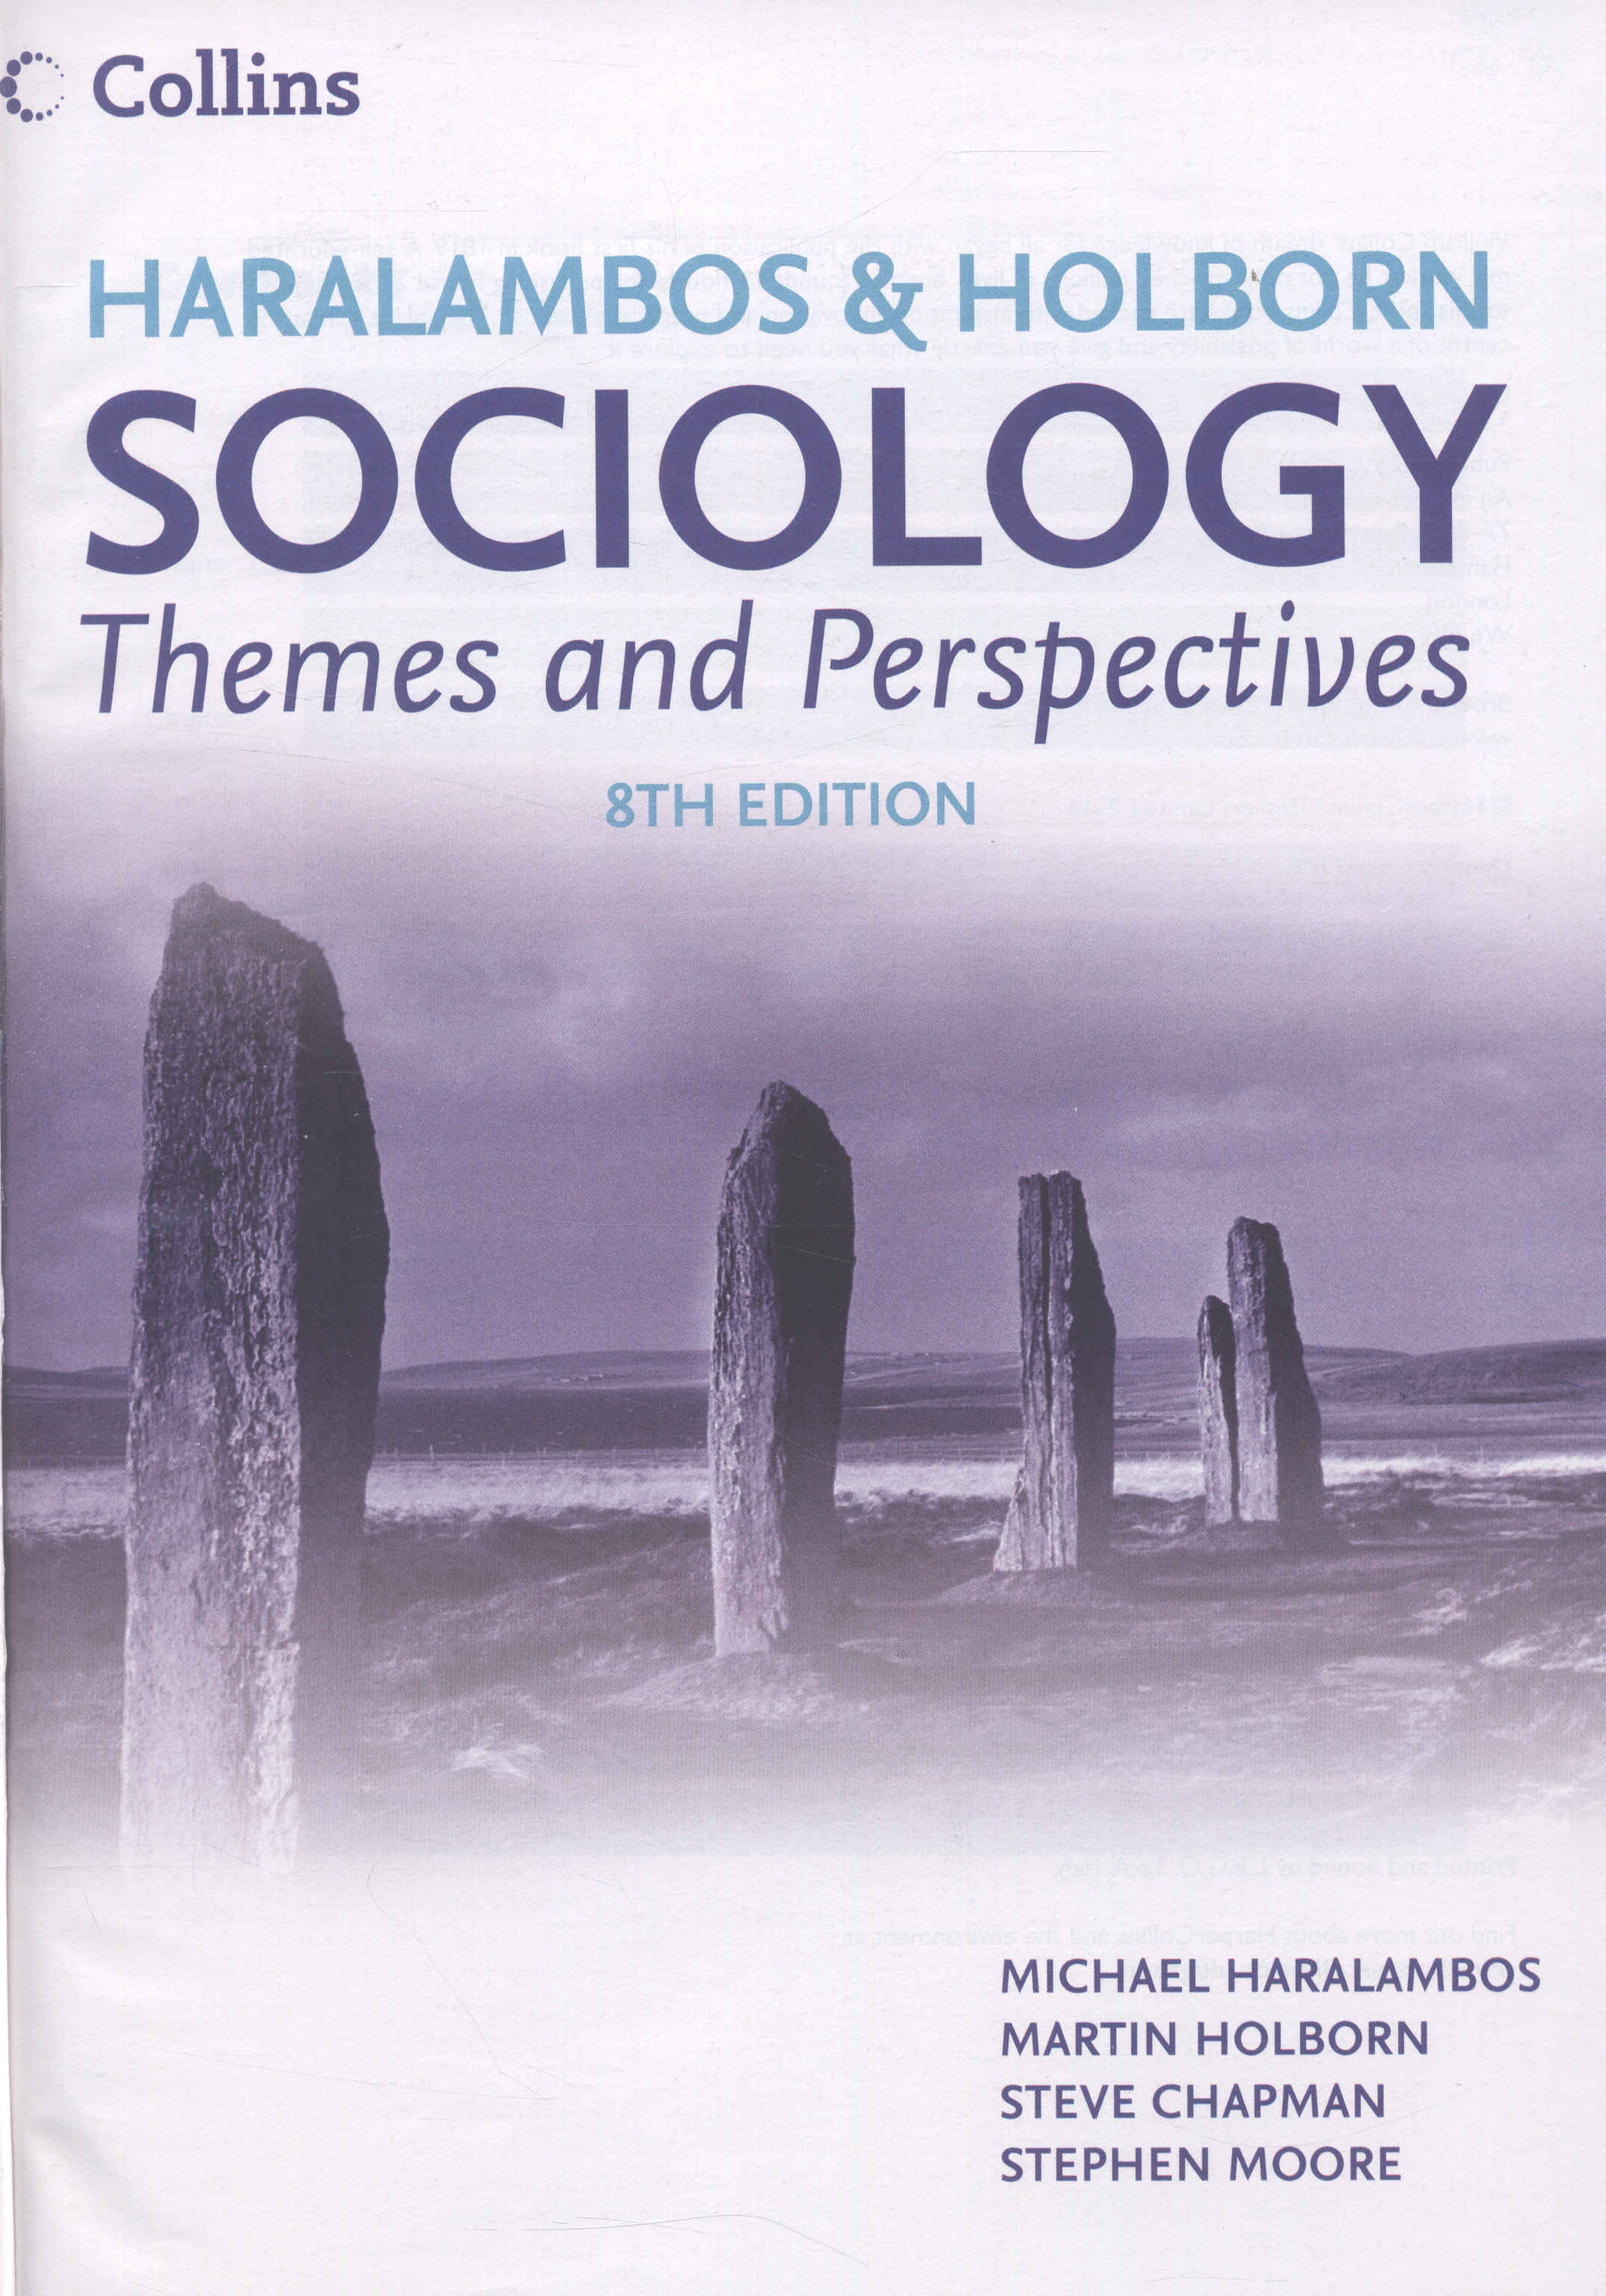 haralambos and holborn Haralambos and holborn - sociology themes and perspectives has 95 ratings and 2 reviews dinakar said: gives you a better perspective on different strand.